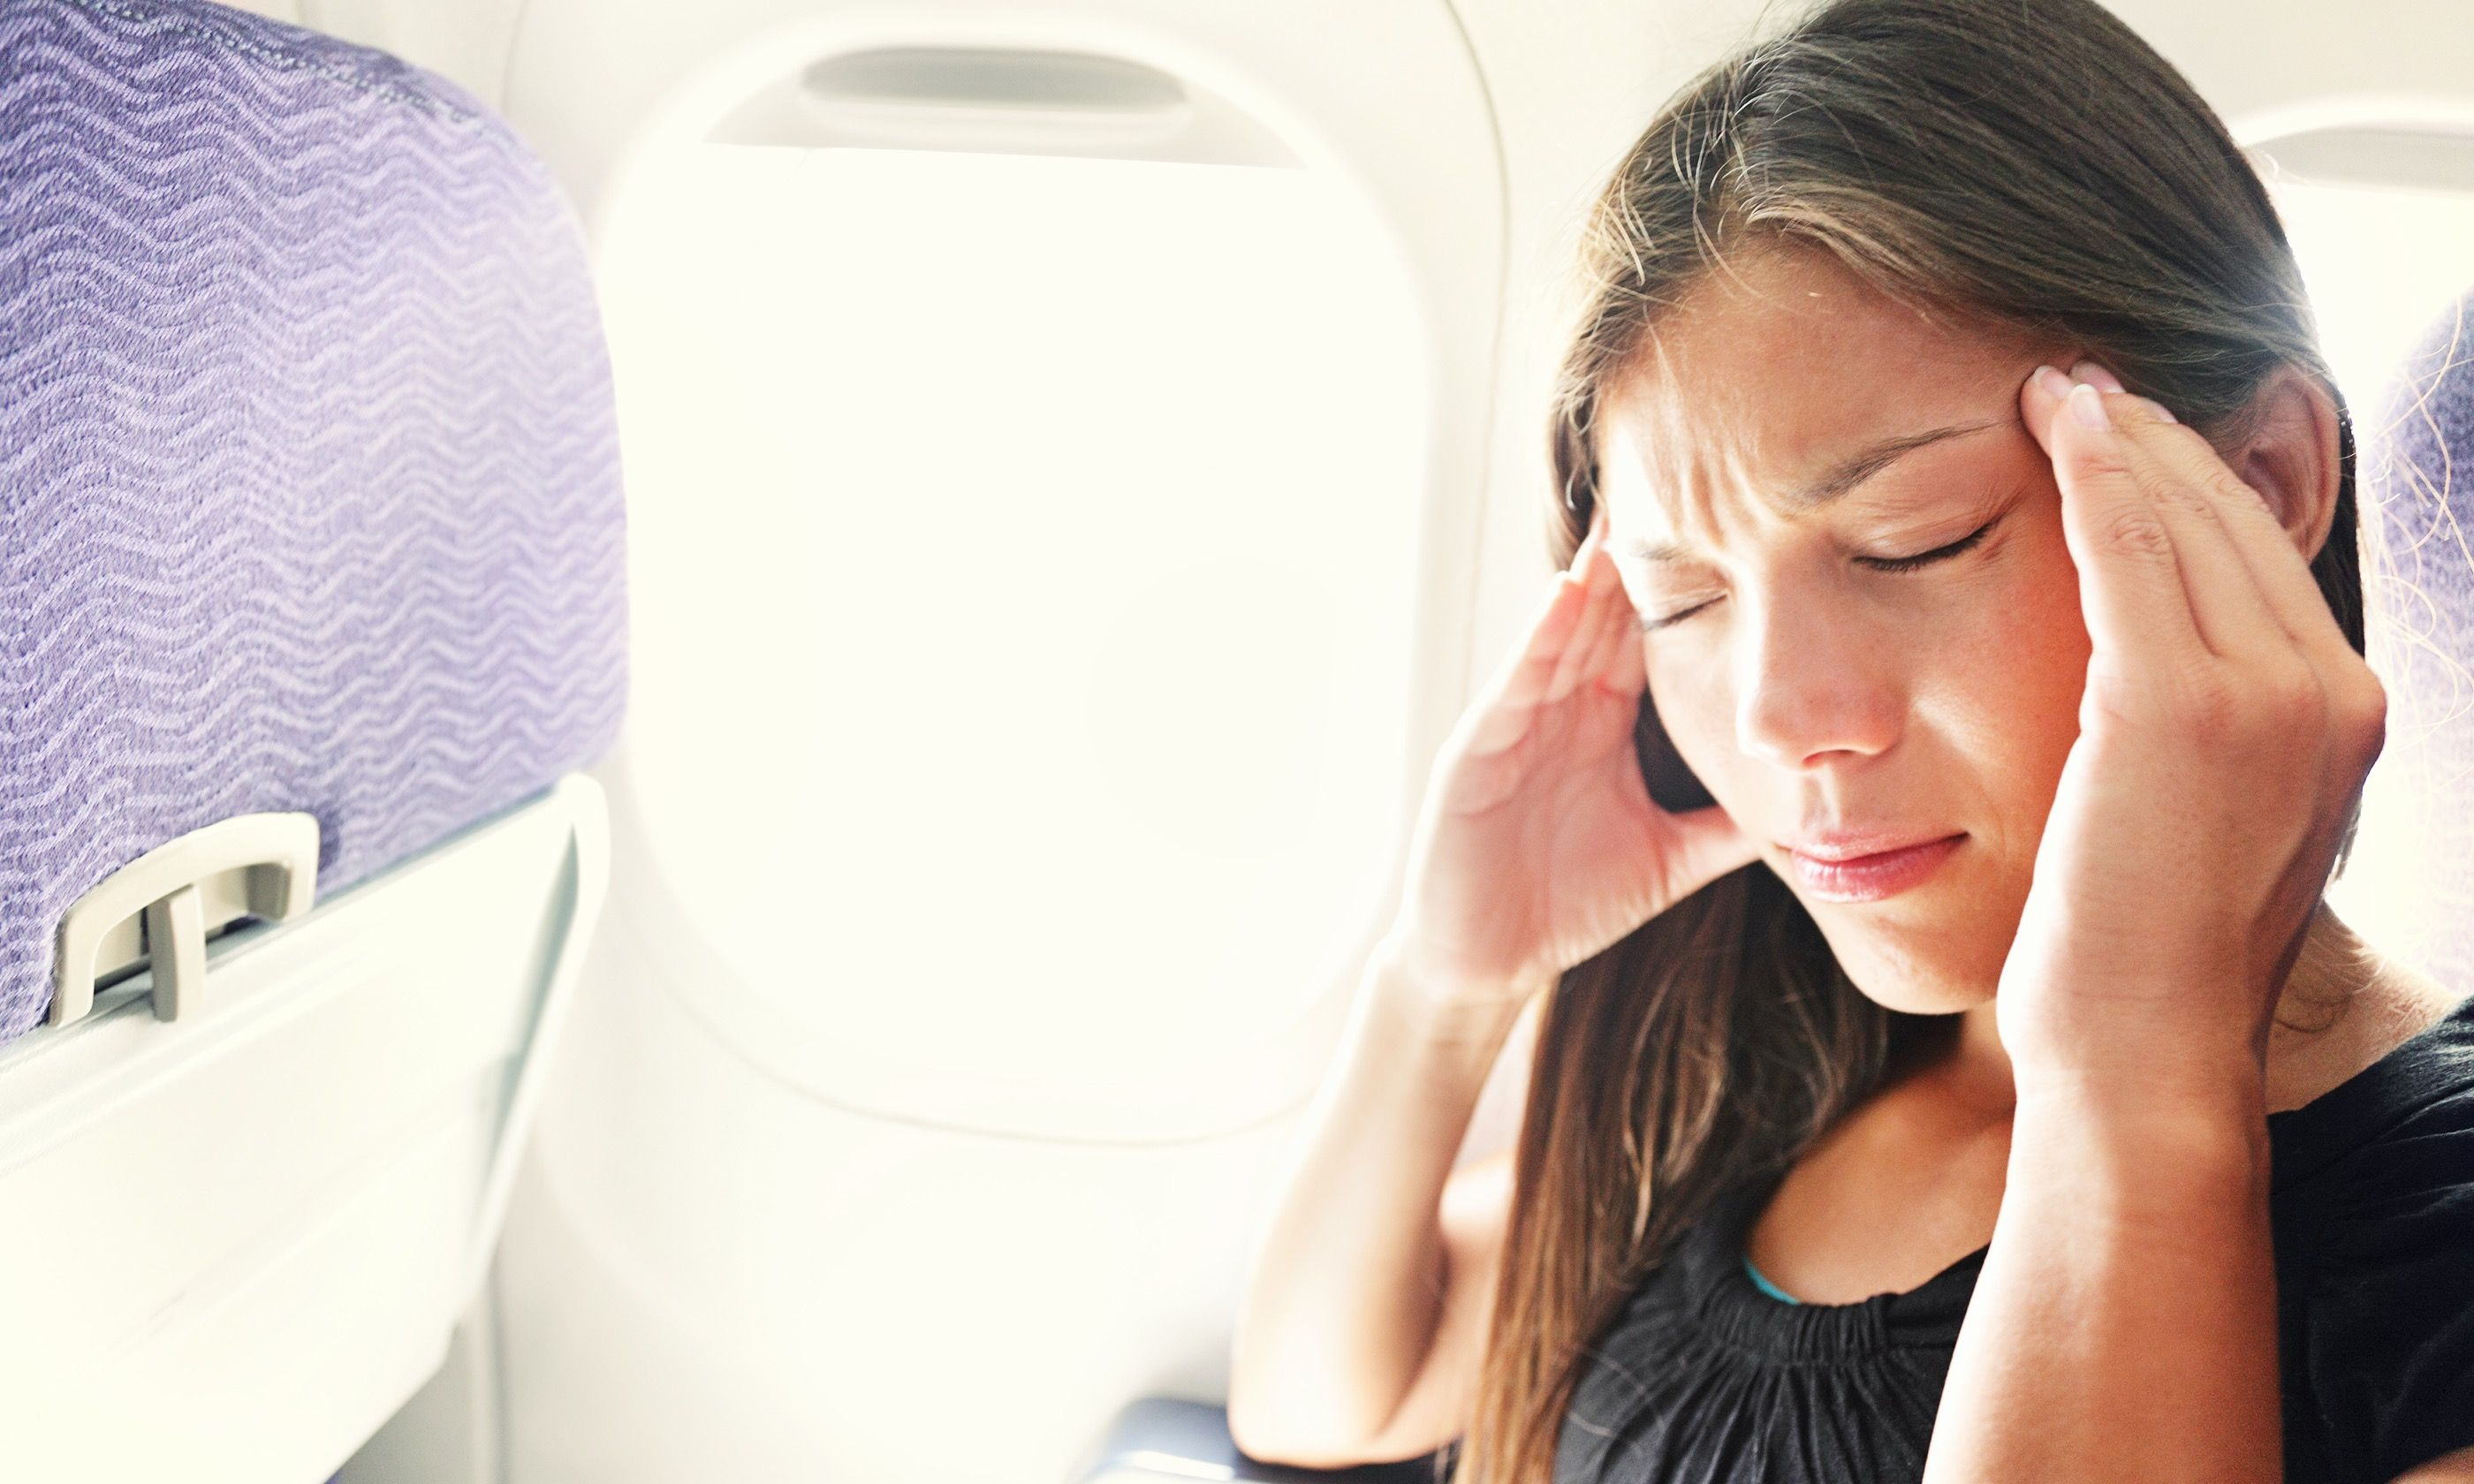 Stressed passenger employing calming techniques (Dreamstime)